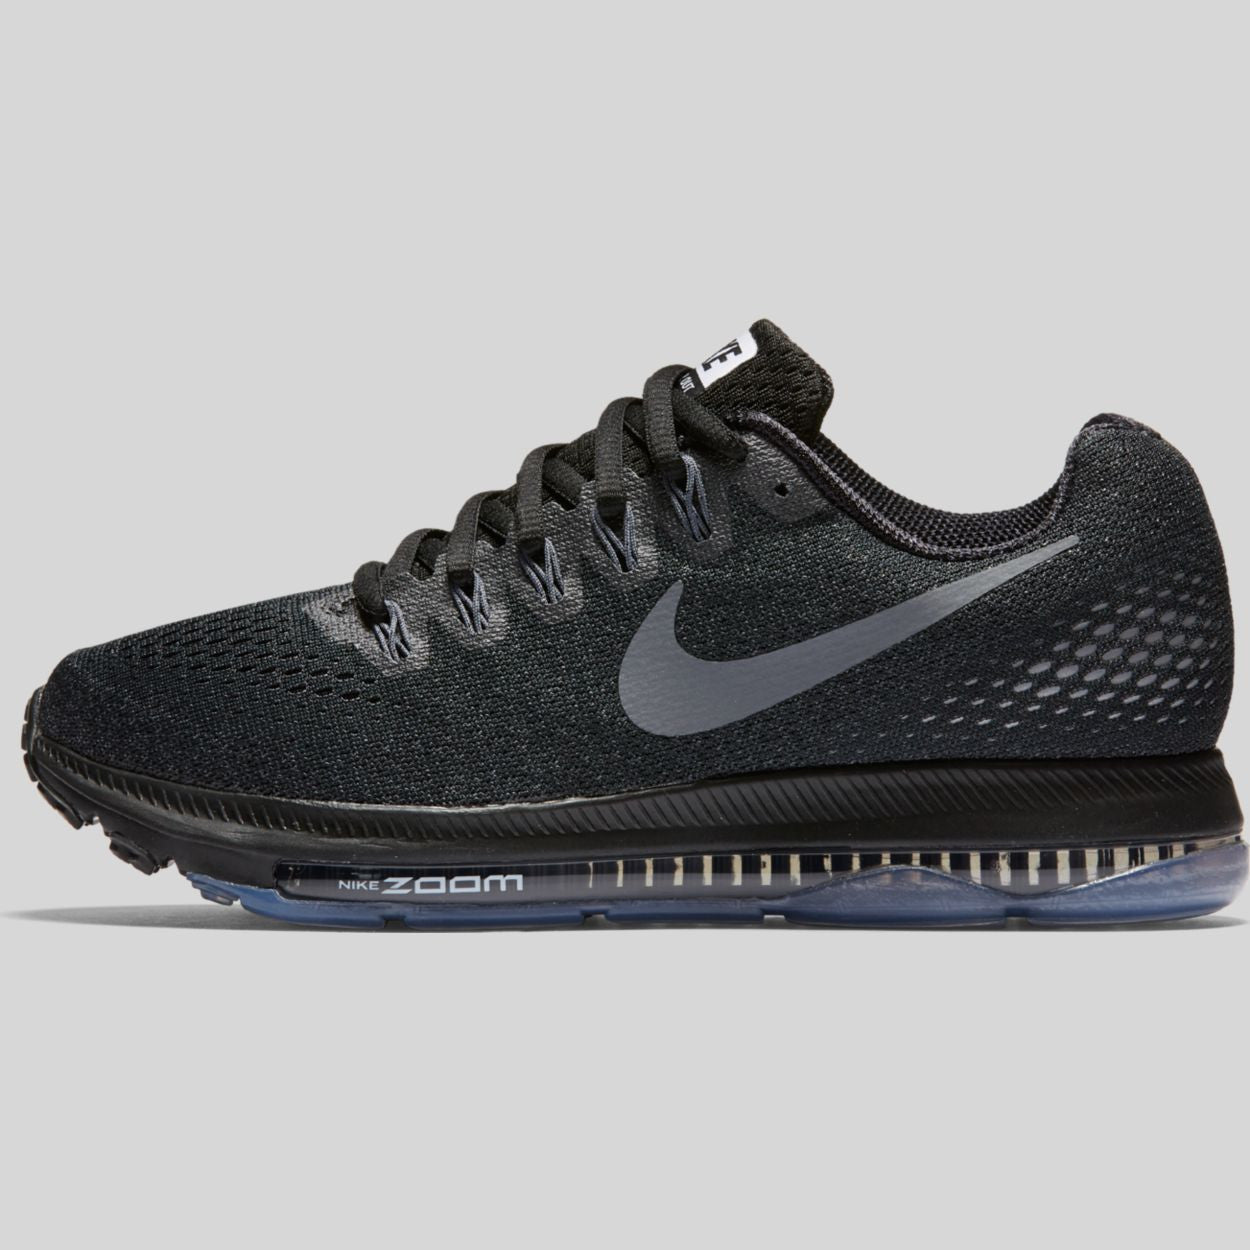 dd74bbc742 Nike Wmns Zoom All Out Low Black Dark Grey Anthracite White (878671-001)